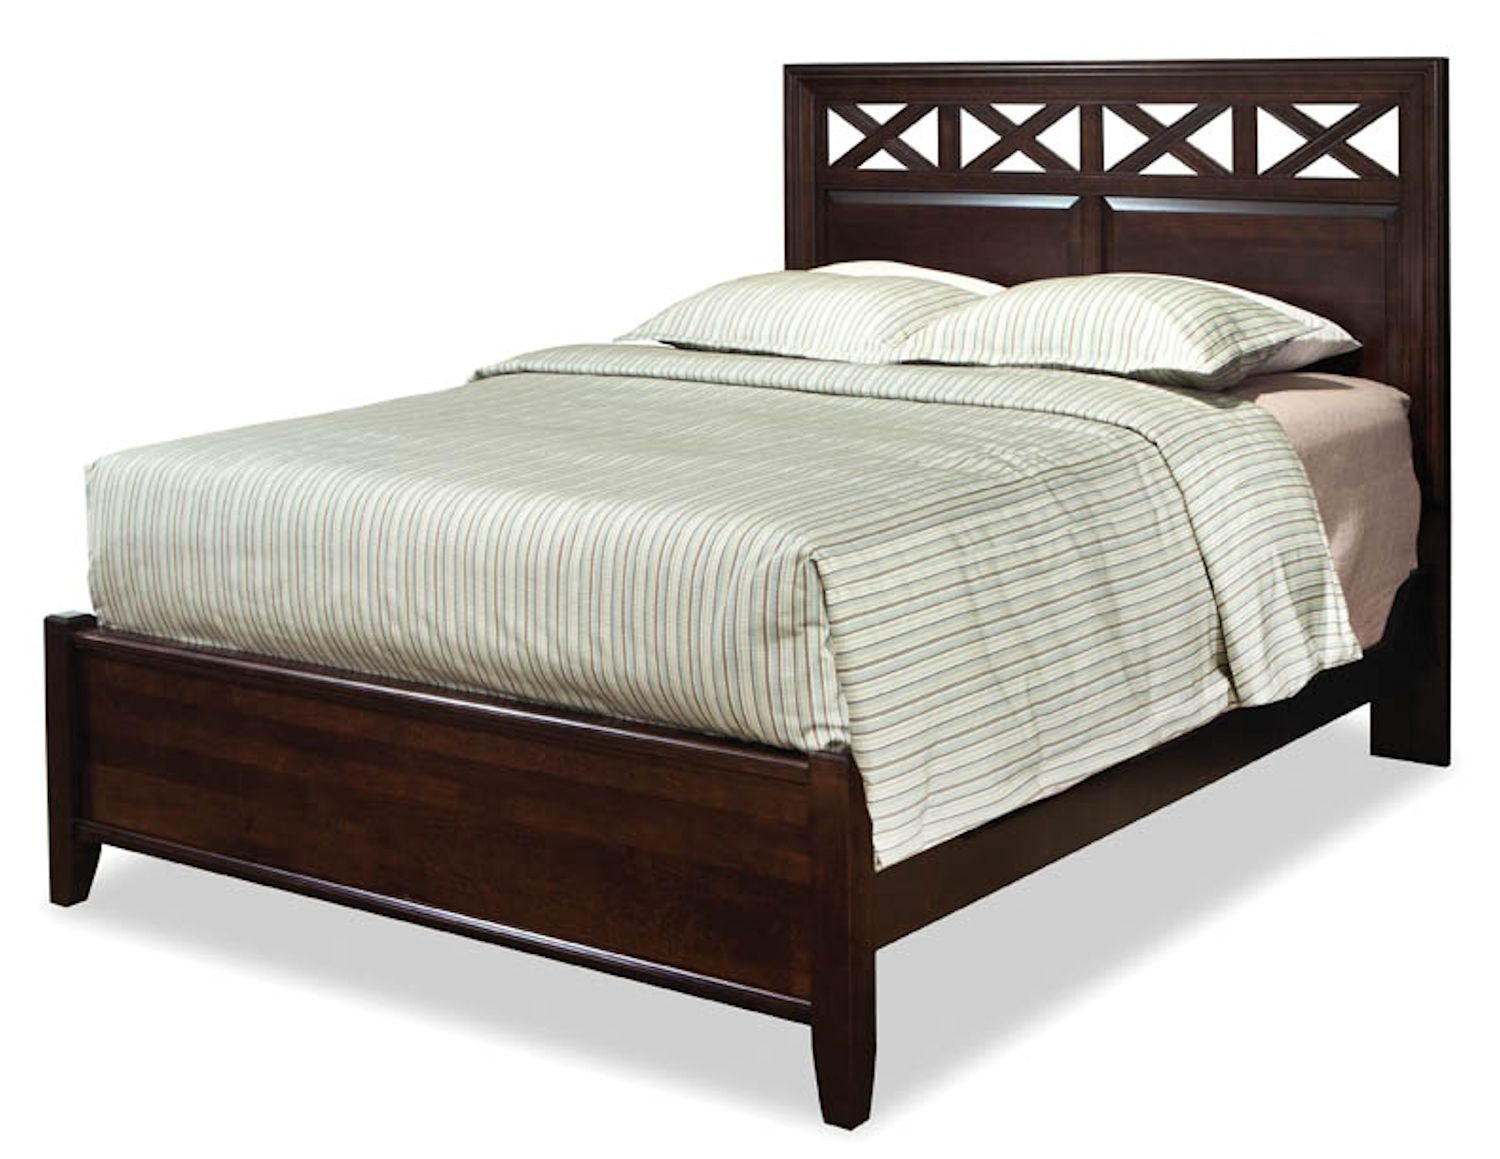 Durham Furniture Bedroom Glen Panel Bed 131 124 Rider